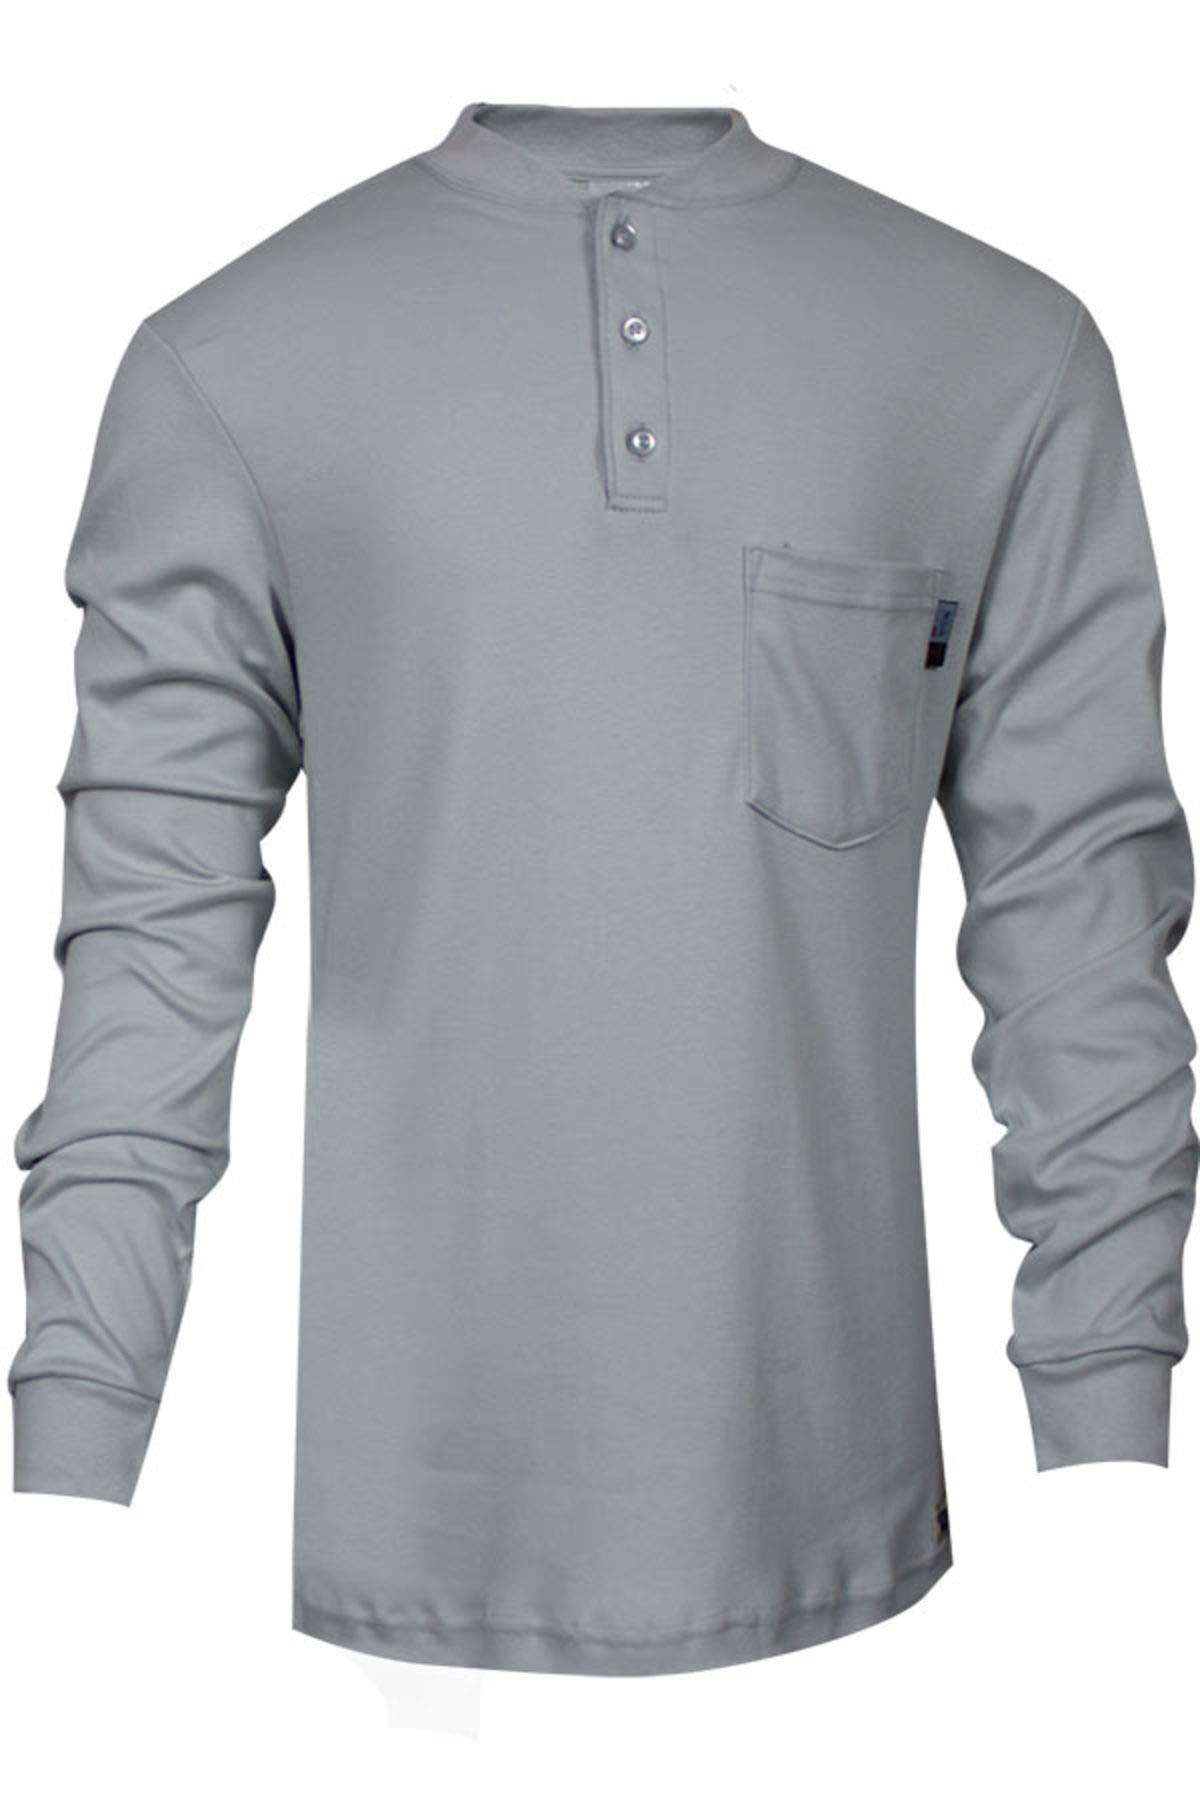 National Safety Apparel C54PGBSLSXL Flame Resistant Classic Cotton Long Sleeve Henley Shirt, X-Large, Gray